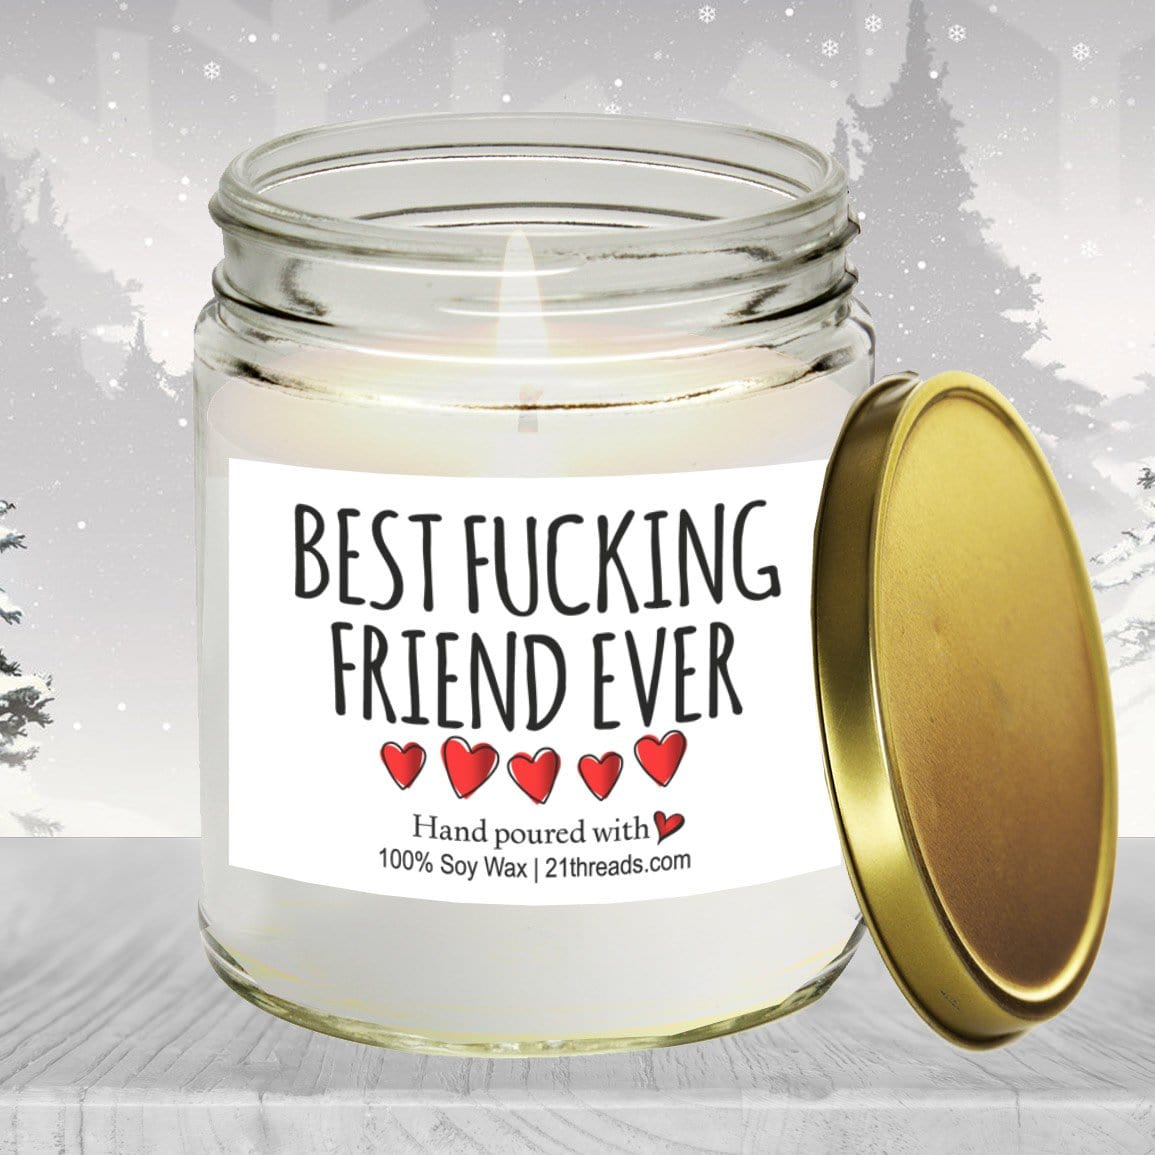 Best Fucking Friend 8oz Premium 100% Soy Candle